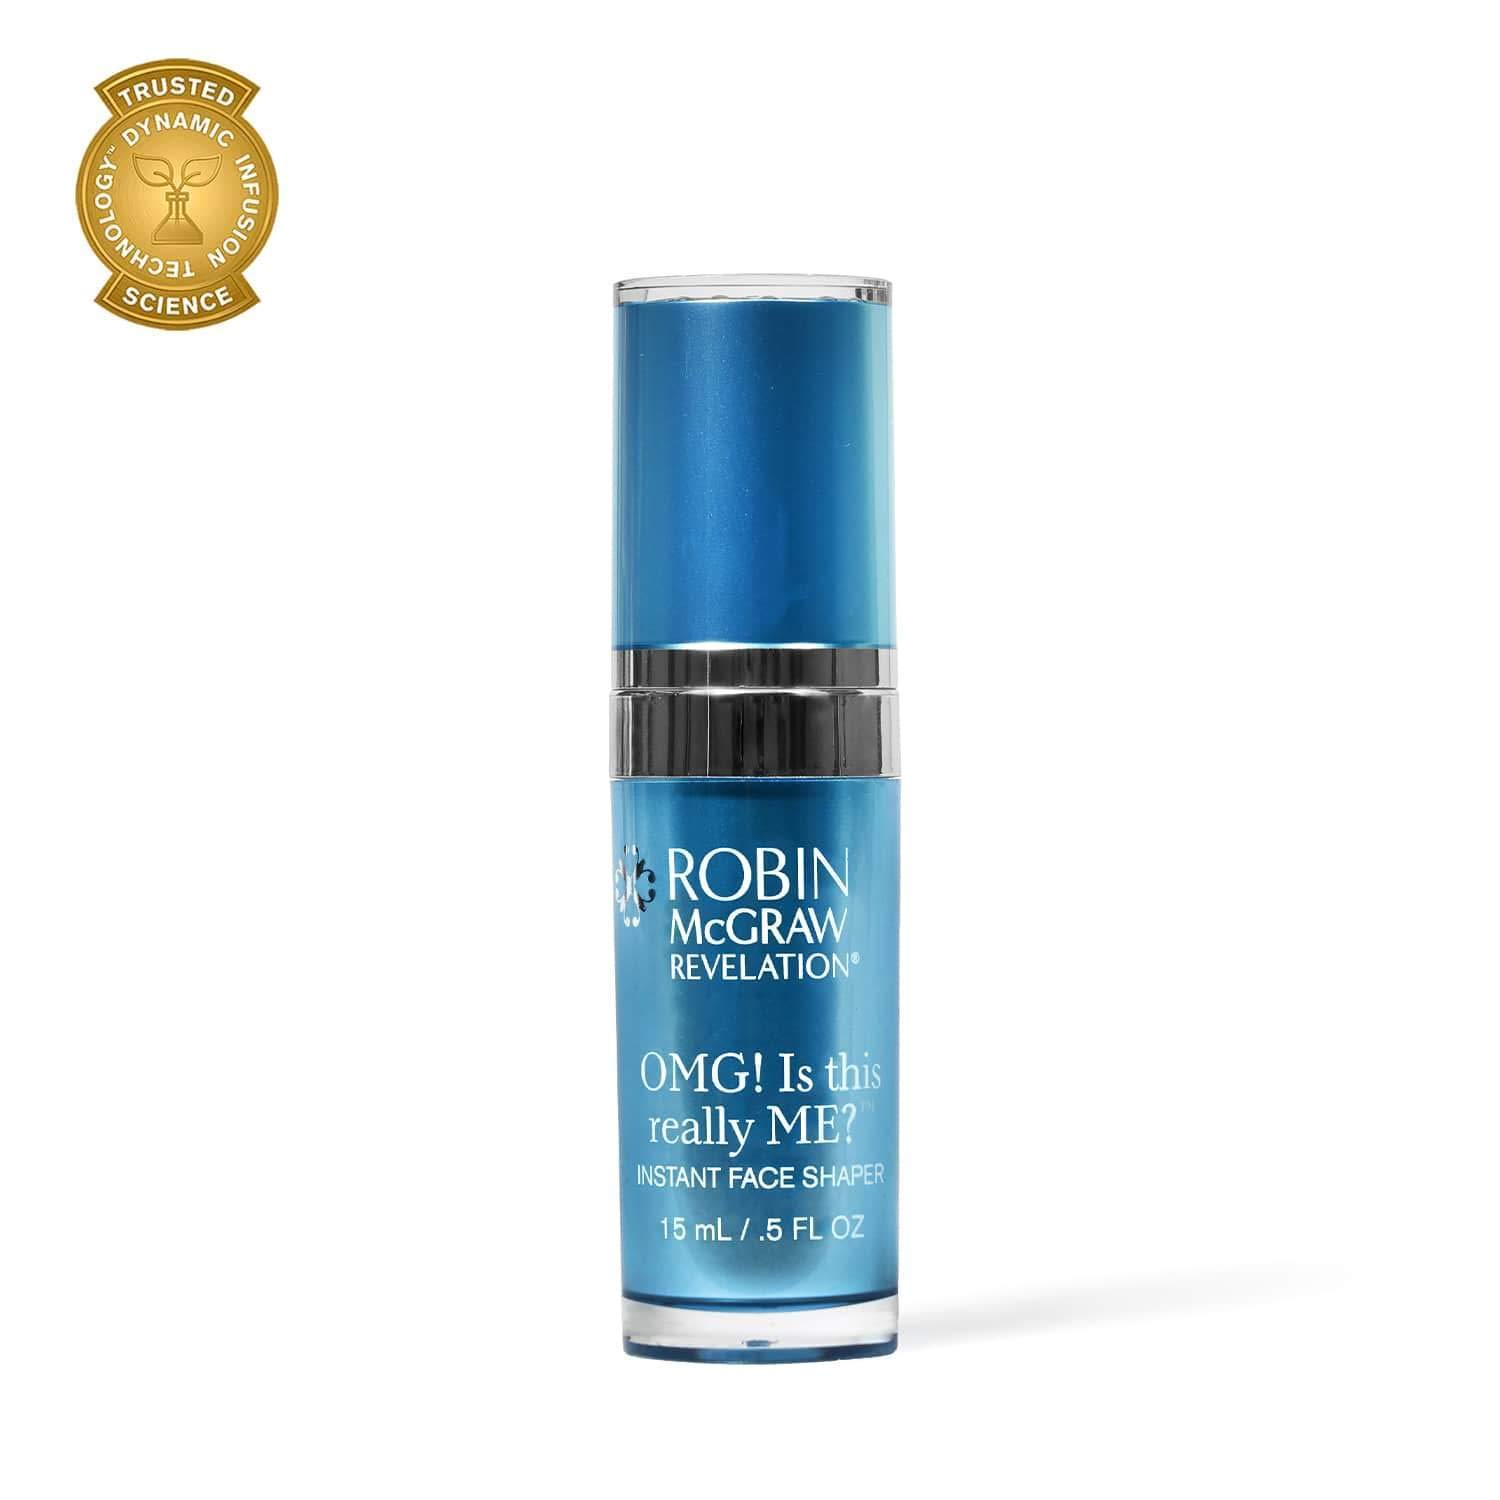 Robin McGraw Revelation OMG! is this really ME? - Instant Face Shaper, 0.5 fl. oz.